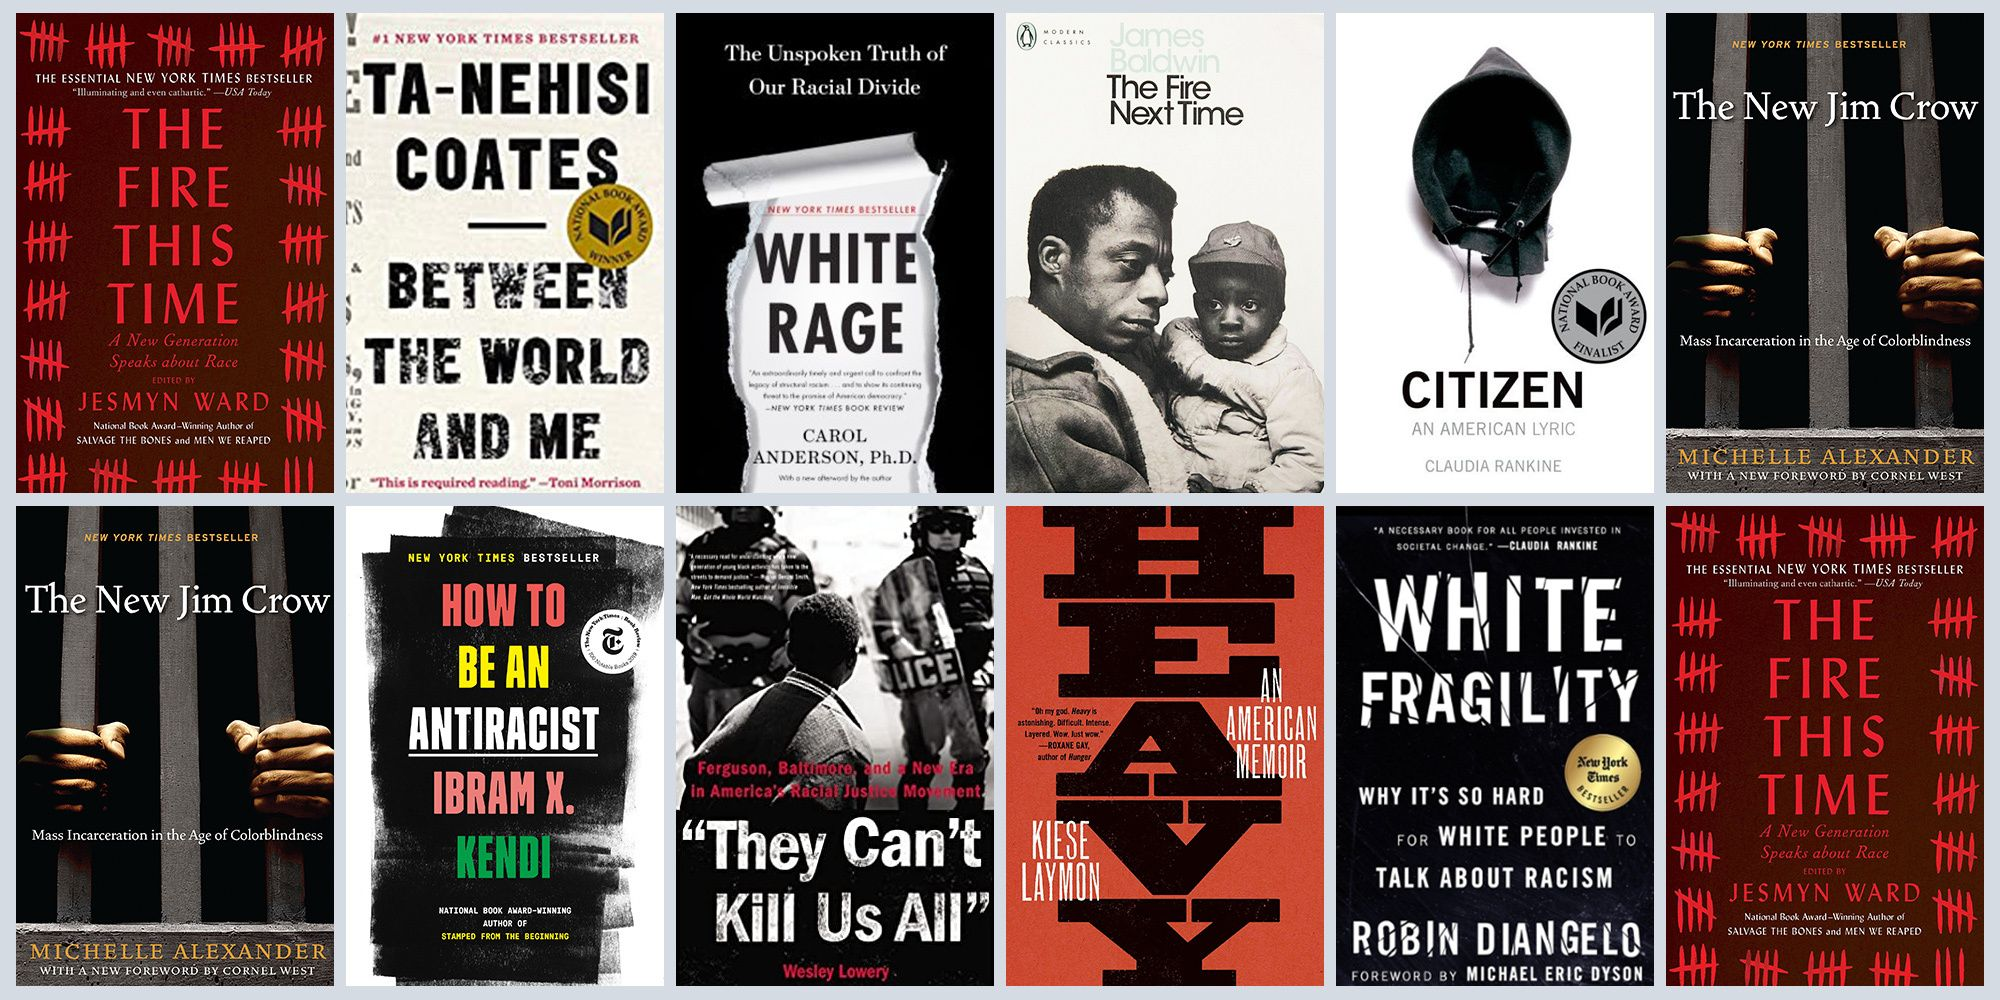 10 Best Books on Anti-Racism - Essential Anti-Racism Reading List